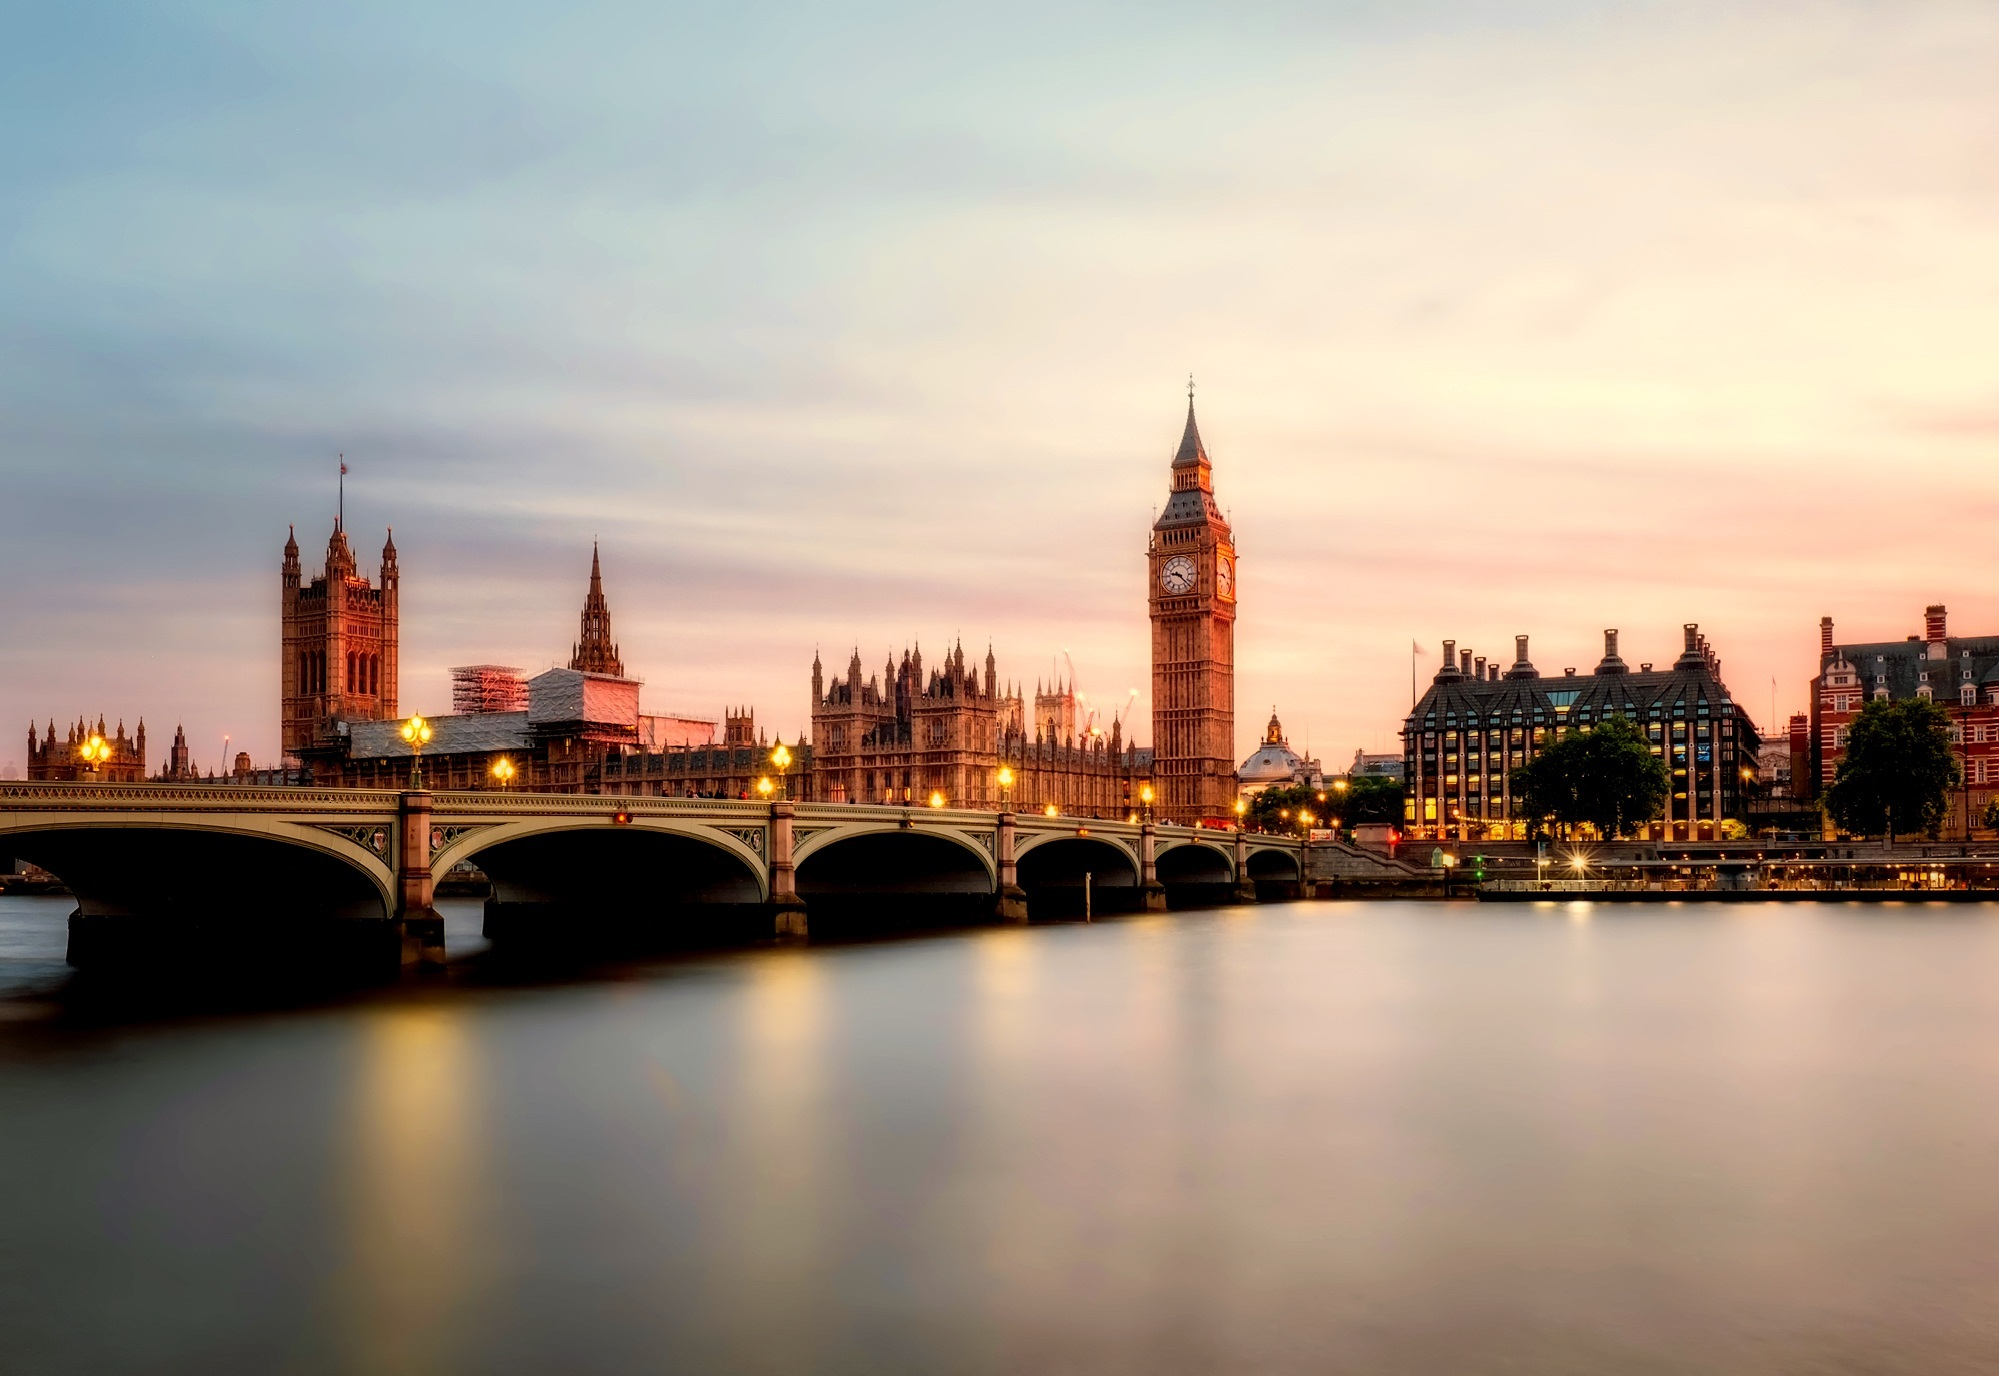 Applications open for N8 AgriFood's new food policy internship in Westminster